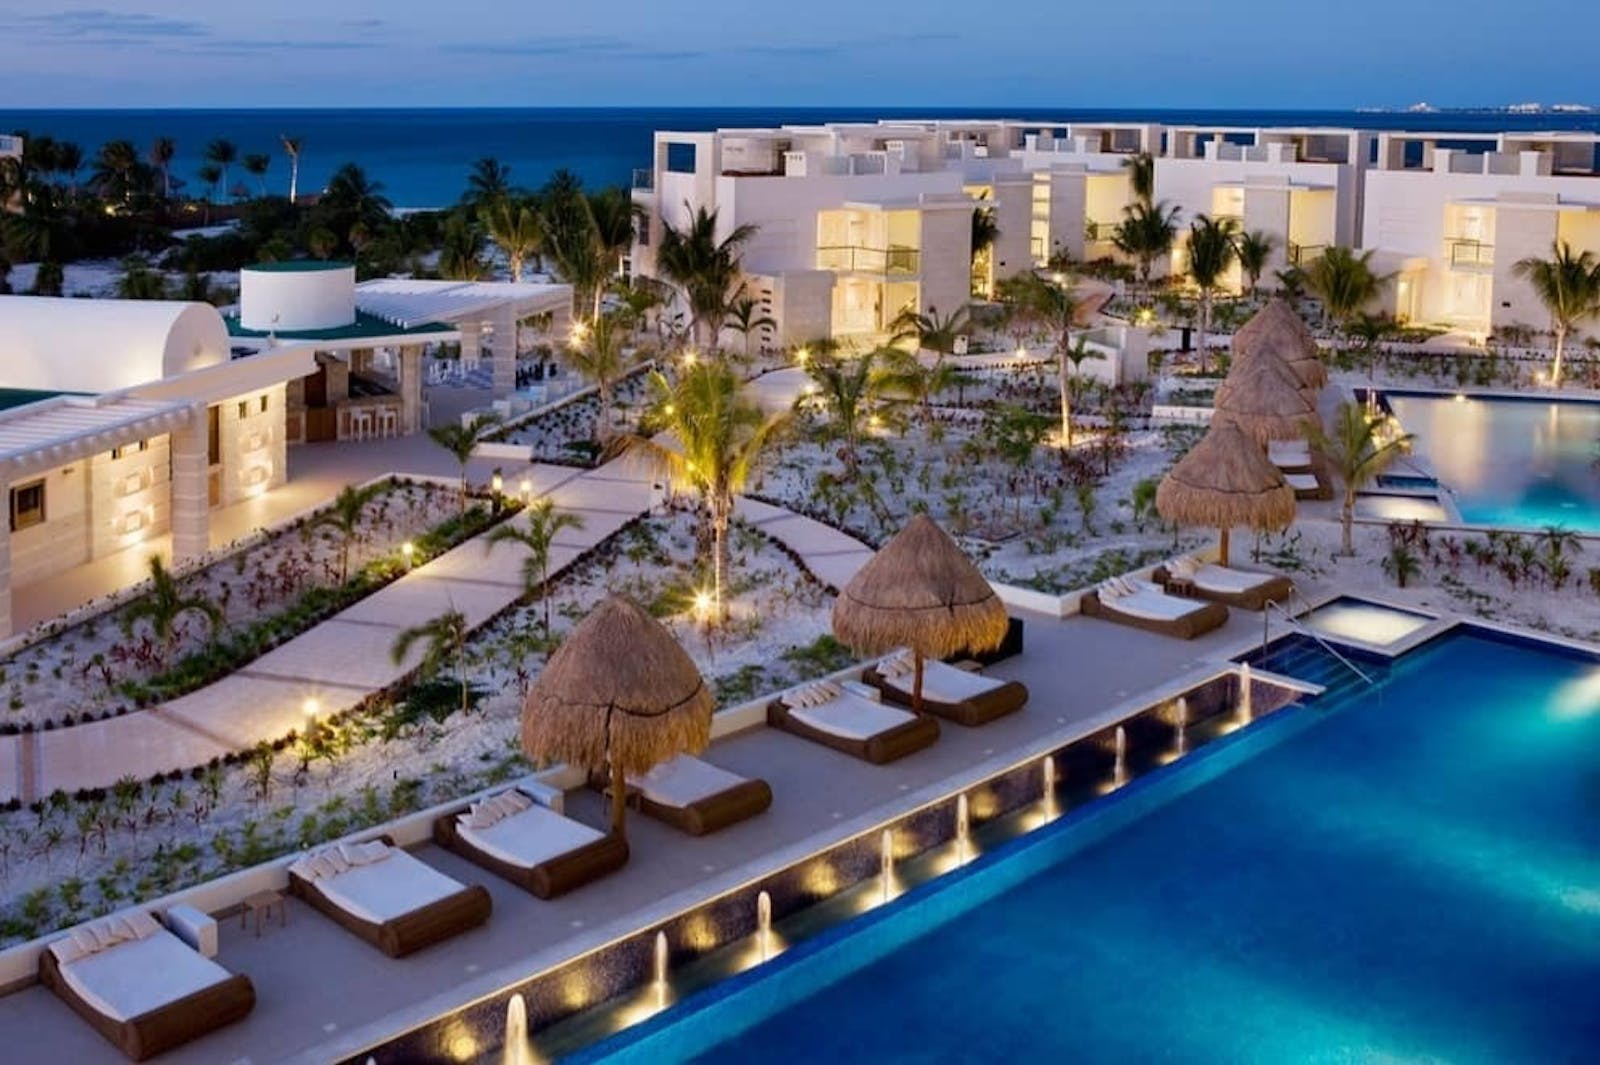 The Beloved Pool at The Beloved Hotel, Riviera Maya, Mexico